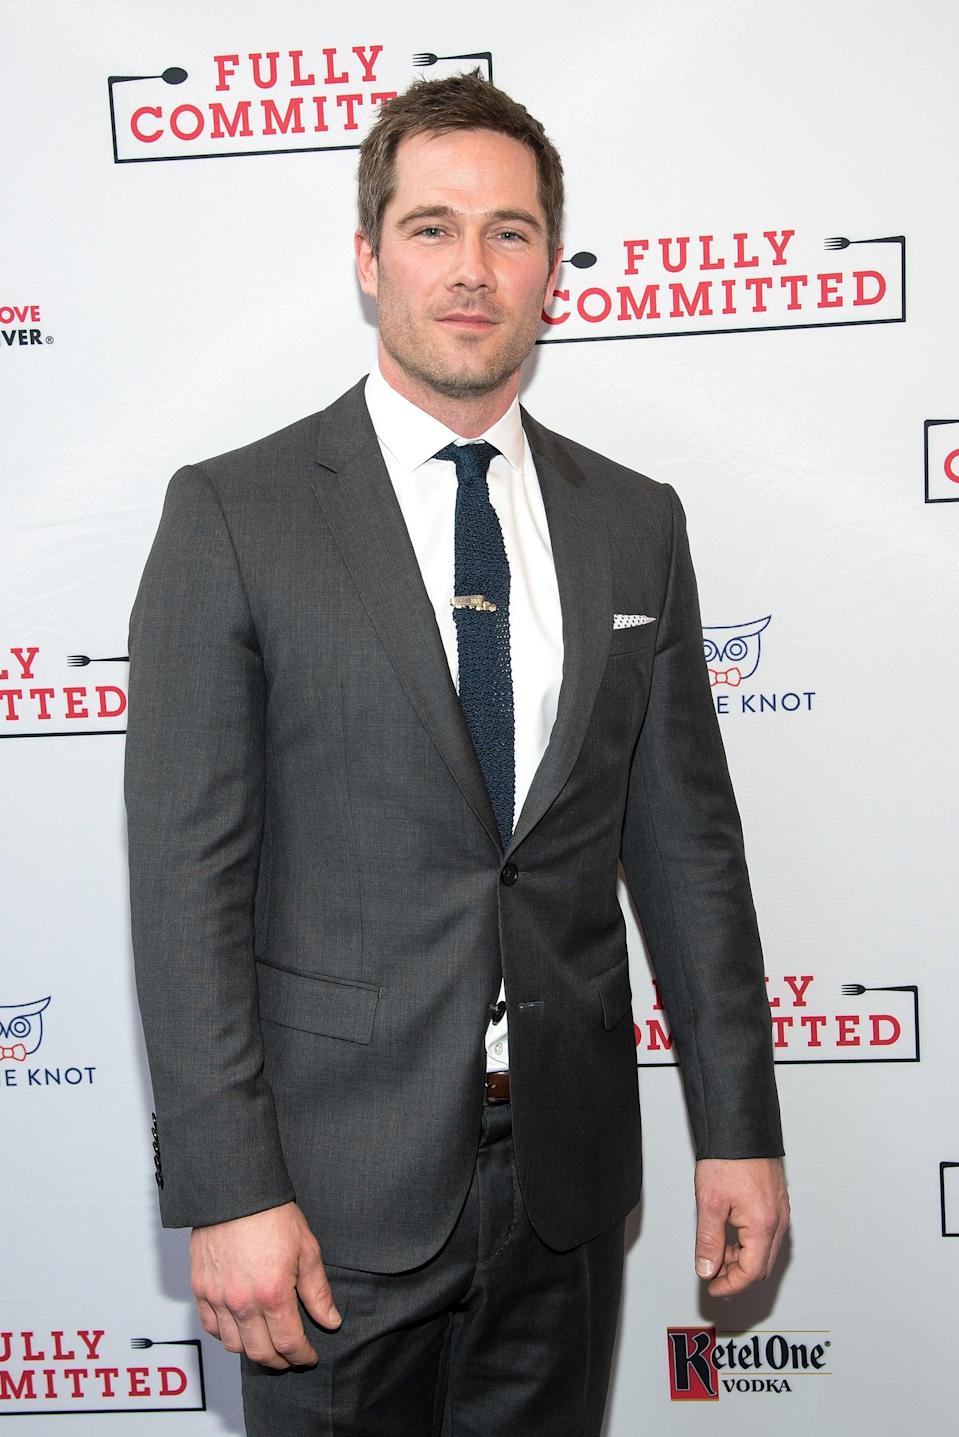 <p>Macfarlane is set to play James, a handsome trainer who works with Peter's mother and gets set up on a surprise blind date with Peter. This definitely isn't Macfarlane's first go-round in a romance: his breakthrough role was as one half of a gay couple on the drama series <strong>Brothers and Sisters</strong>, and he's since become a staple on Hallmark Channel's rom-coms.</p>